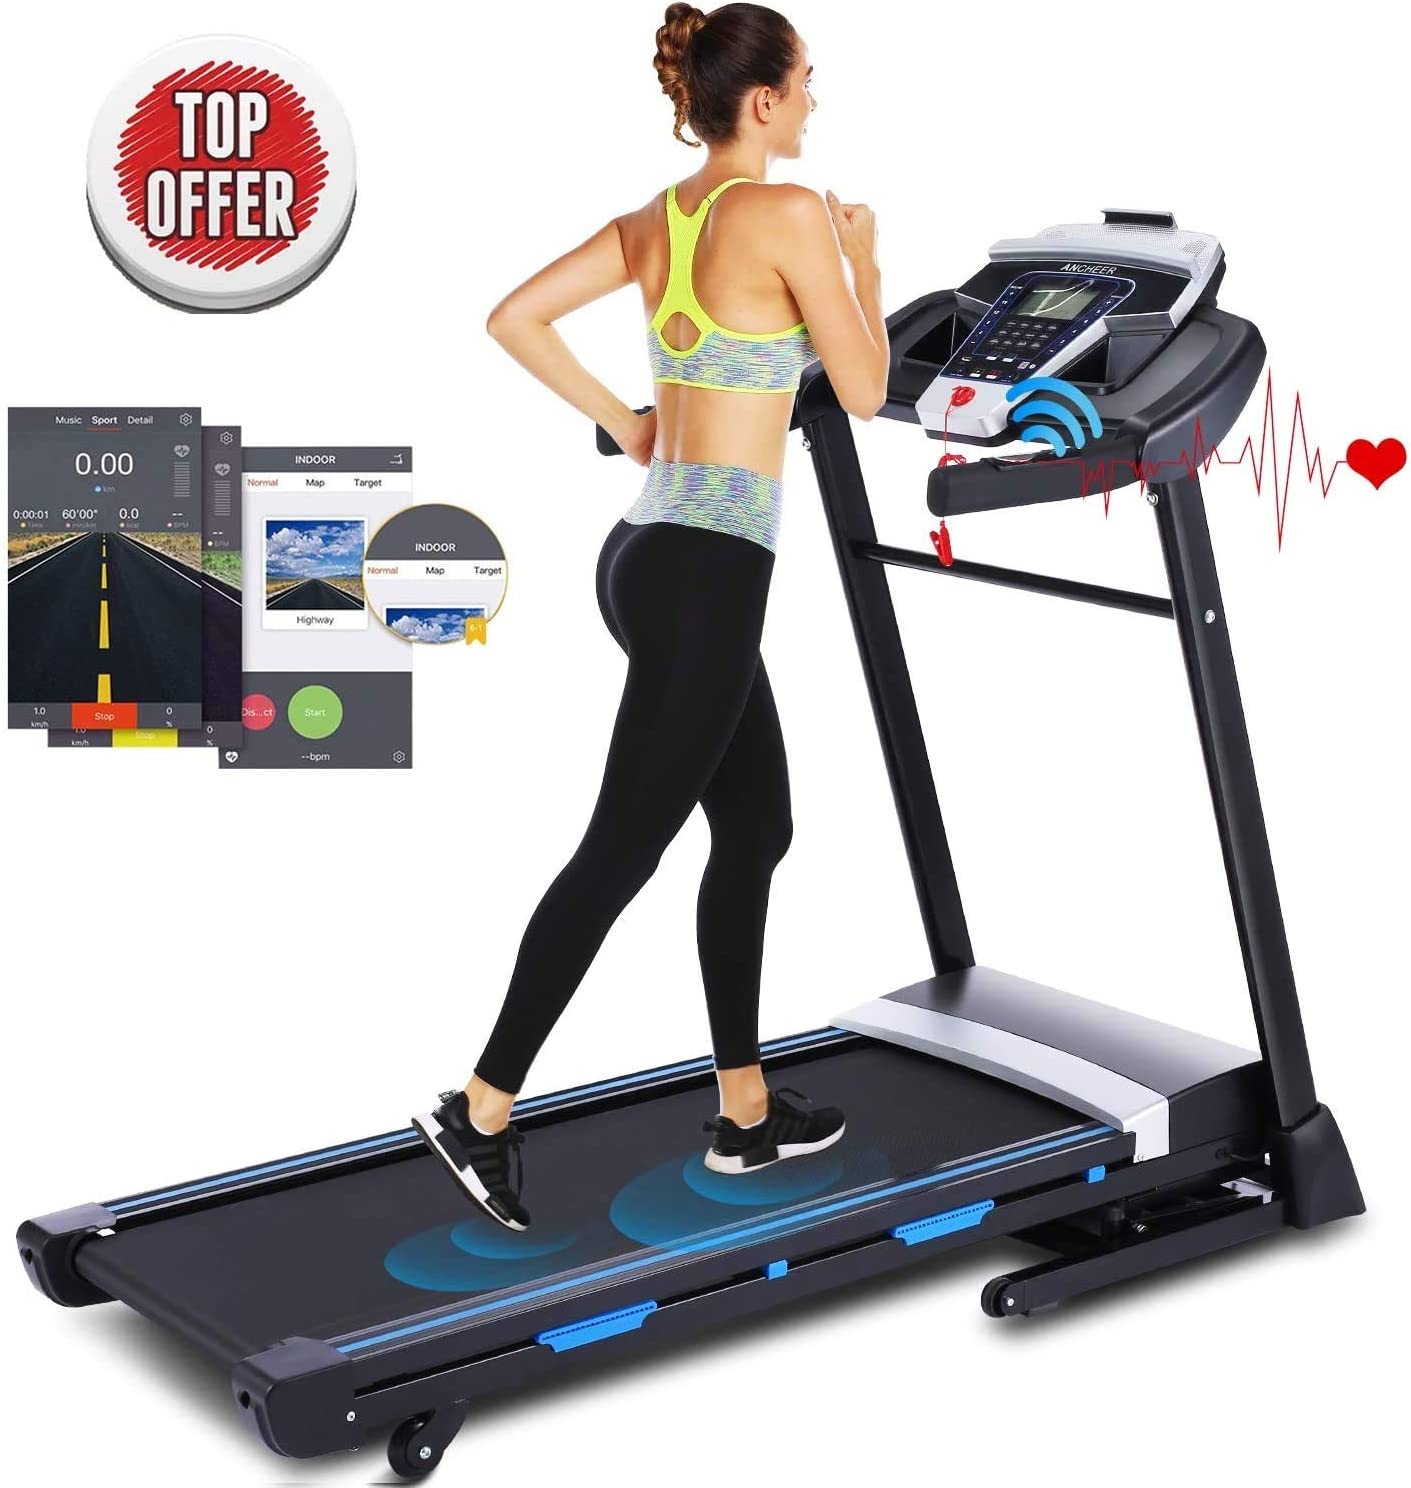 ANCHEER Folding Treadmill, 3.25HP Automatic Incline Treadmill Walking Jogging Running Machine with Bluetooth Speaker and APP Control for Home Gym